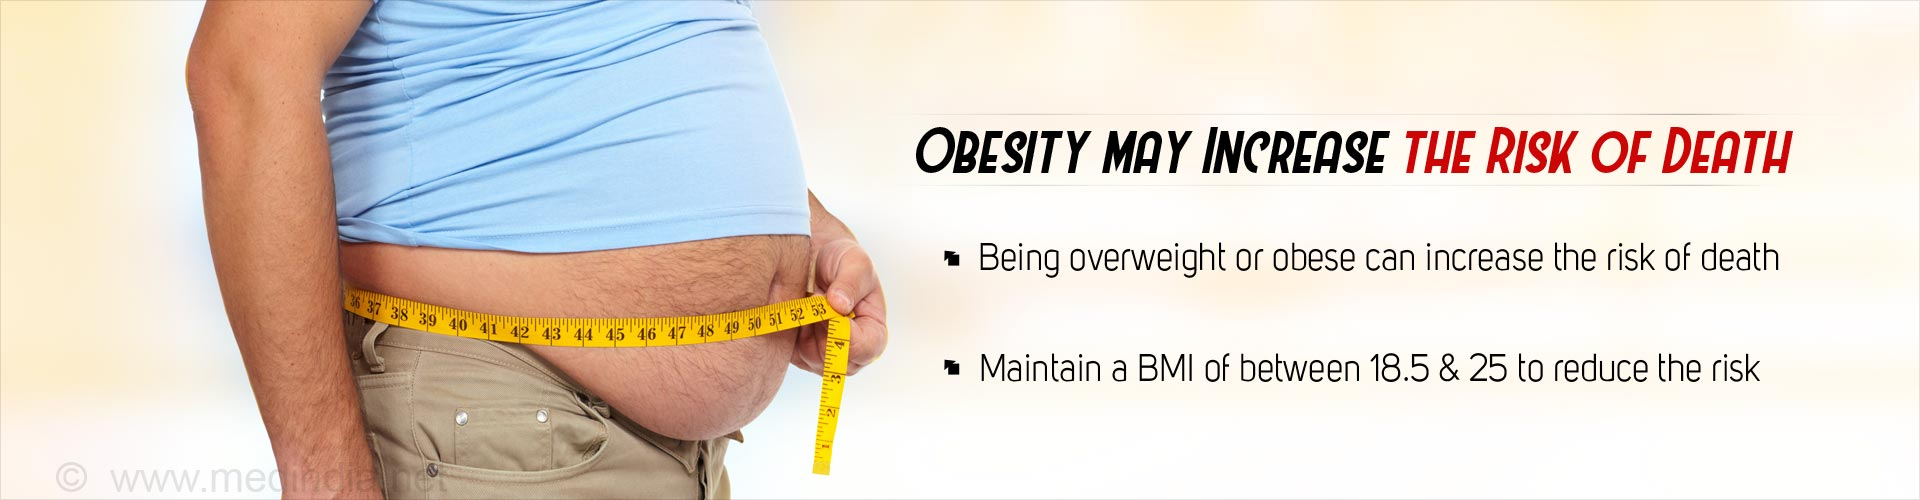 Obesity may increase the risk of death - being overweight or obese can increase the risk of death - maintain a BMI between 18.5 & 25 to reduce risk